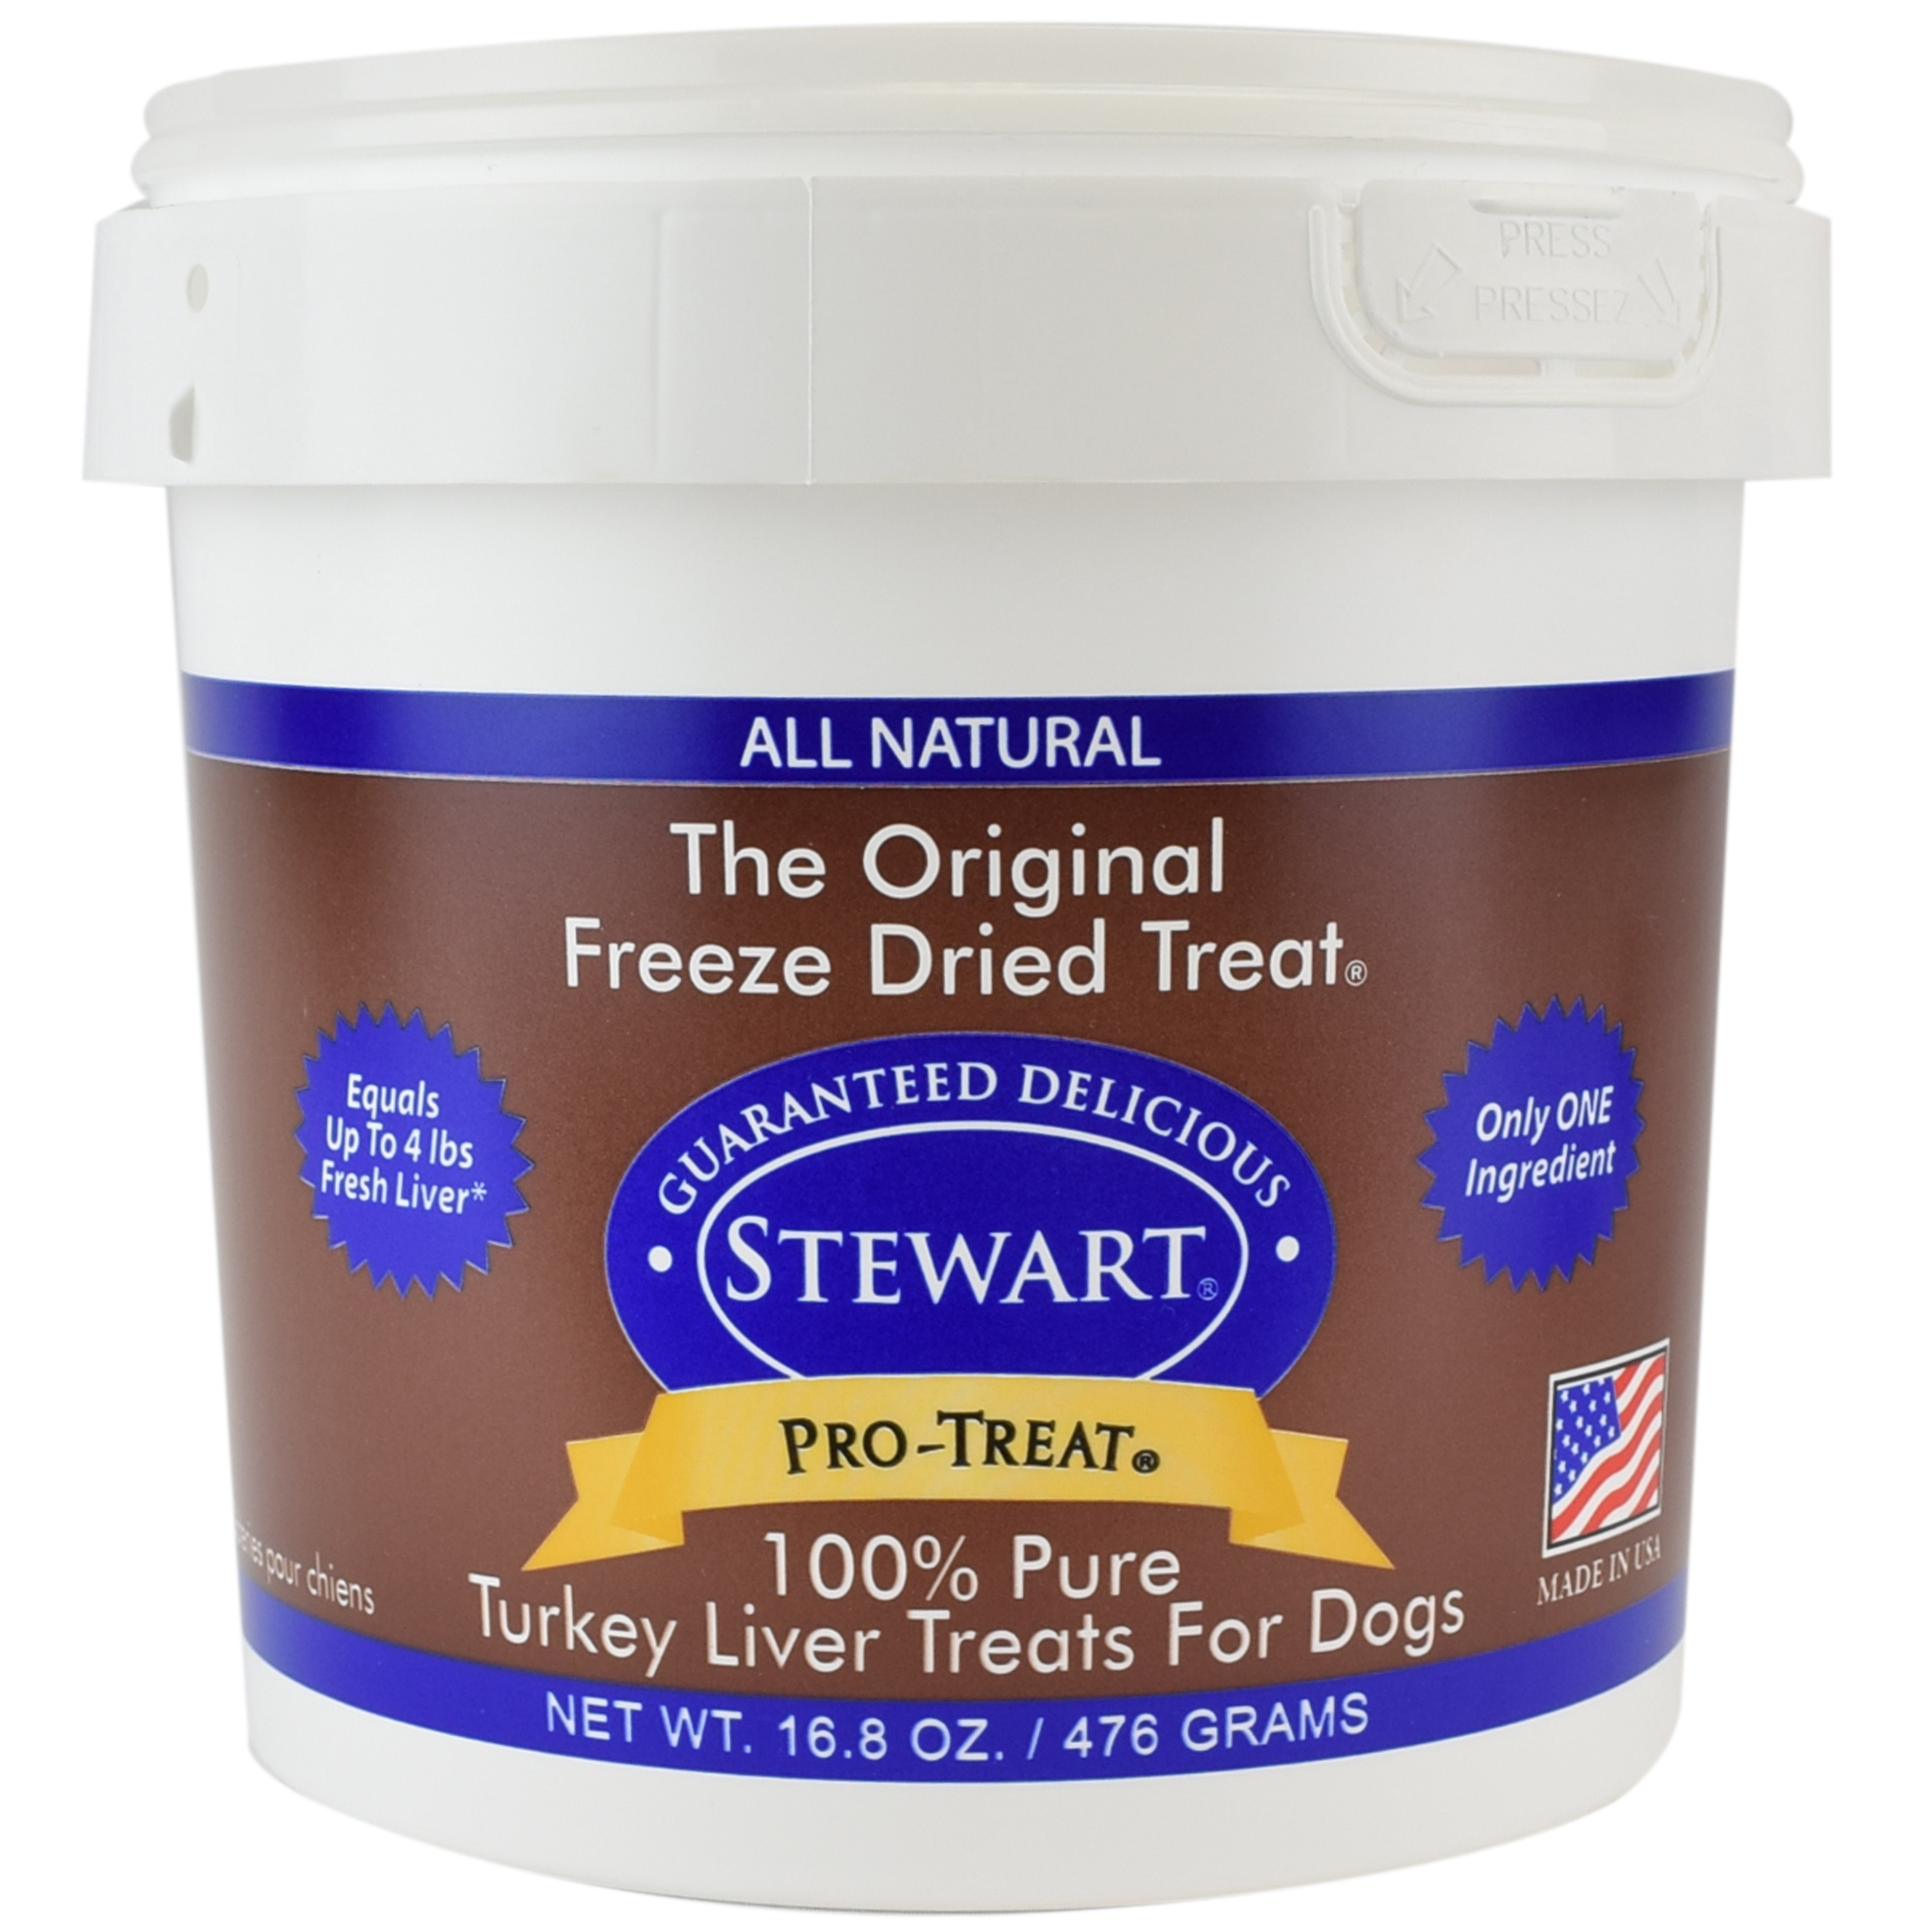 Stewart Freeze Dried Turkey Liver by Pro-Treat,16.8 oz. Tub